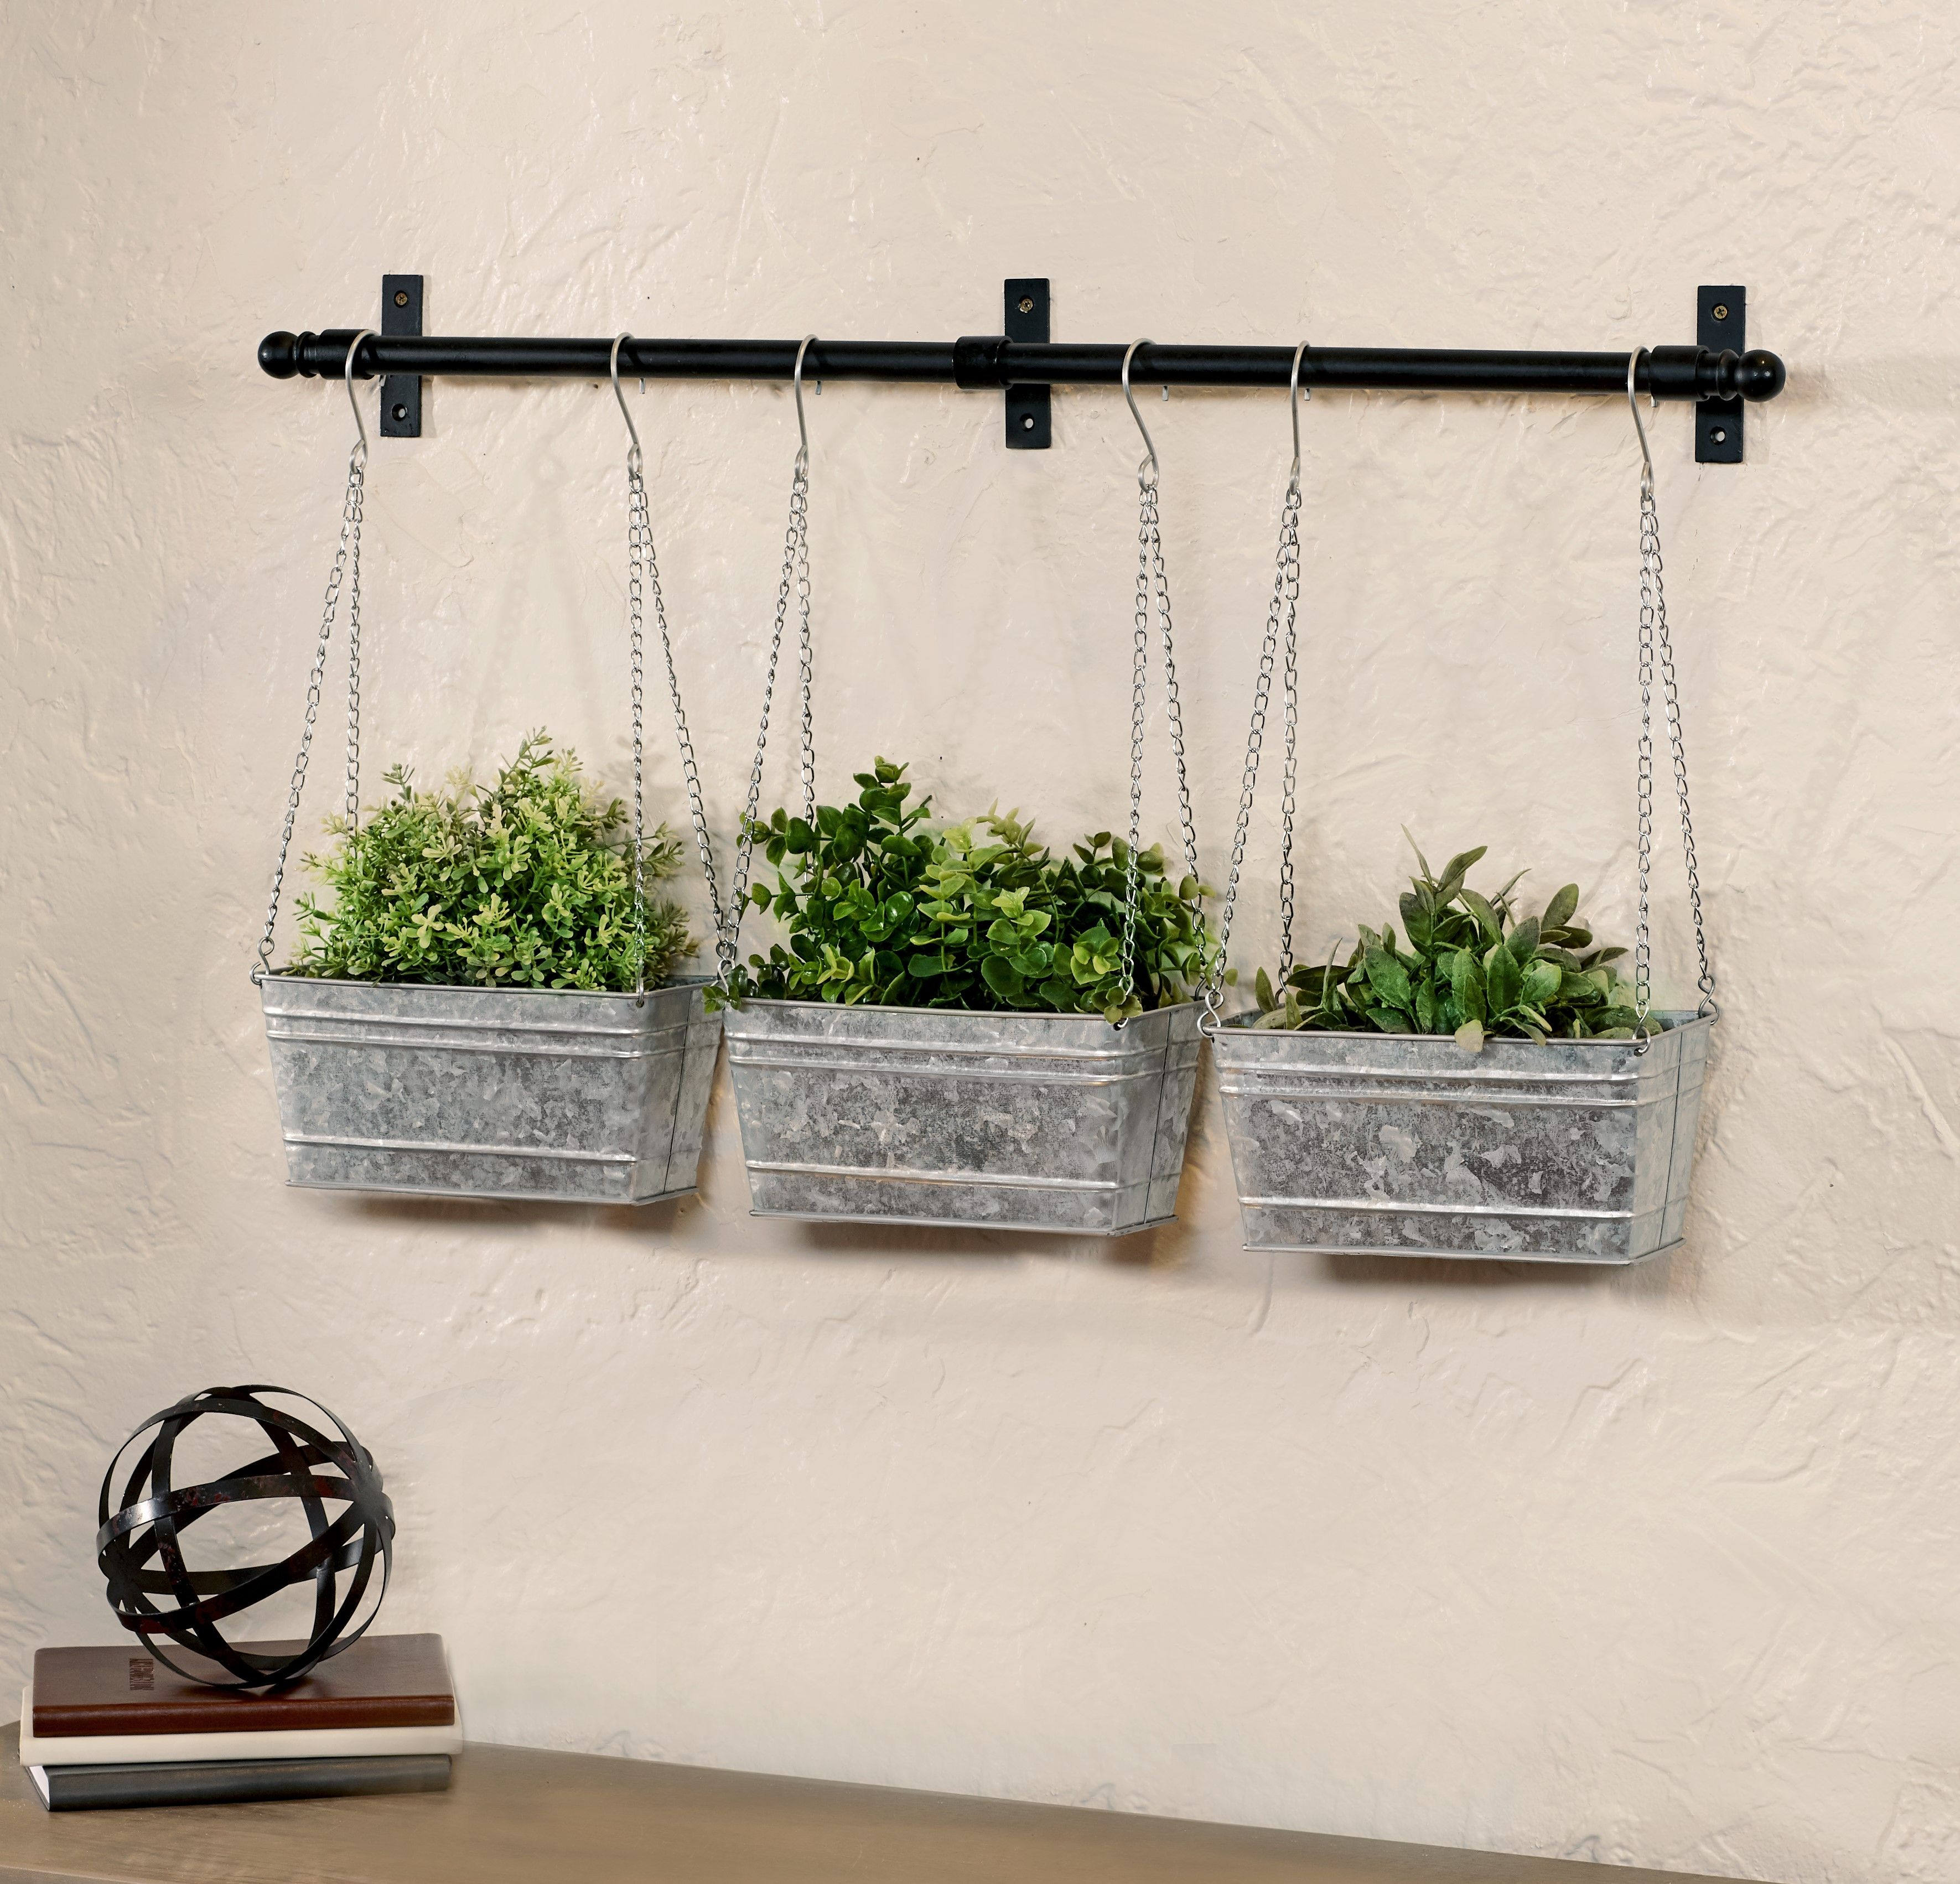 Farmhouse hanging wall planter with three baskets